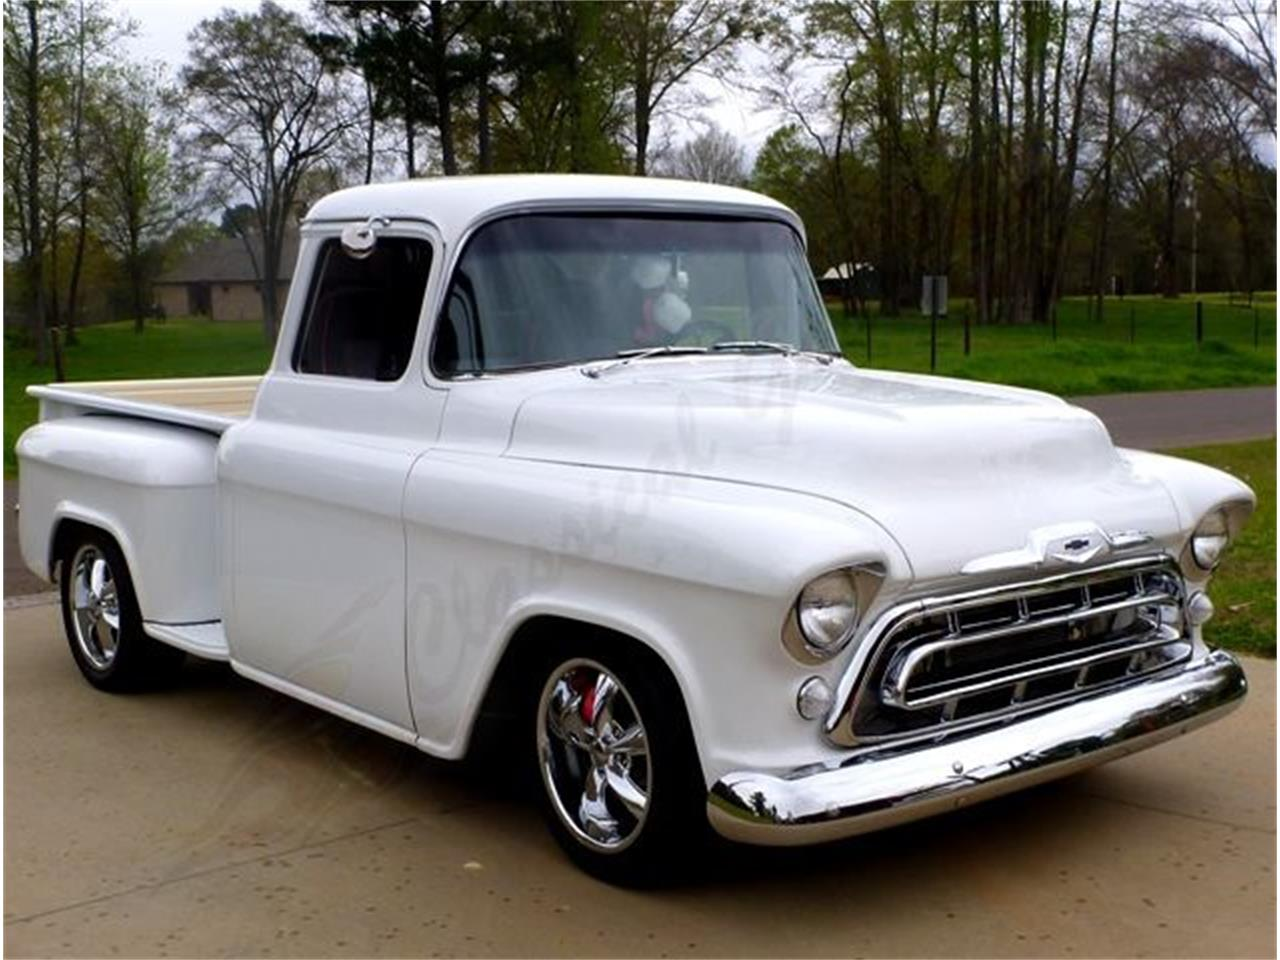 Large Picture of Classic 1957 Chevrolet Pickup - $59,500.00 Offered by Classical Gas Enterprises - H8EG